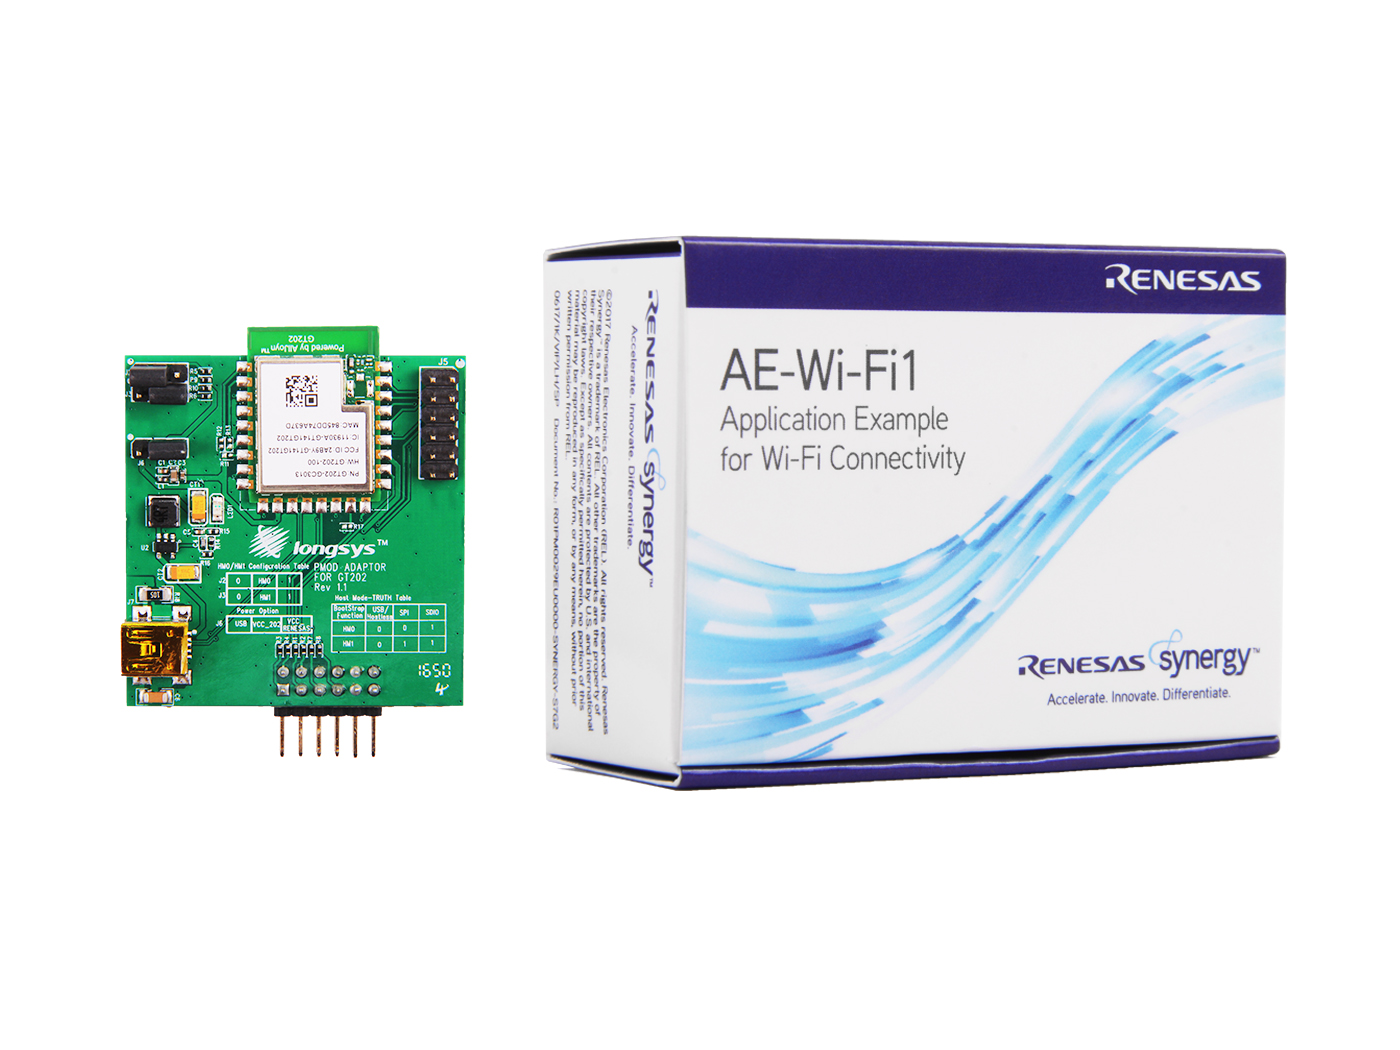 AE-Wi-Fi1 Application Example for Wi-Fi Connectivity